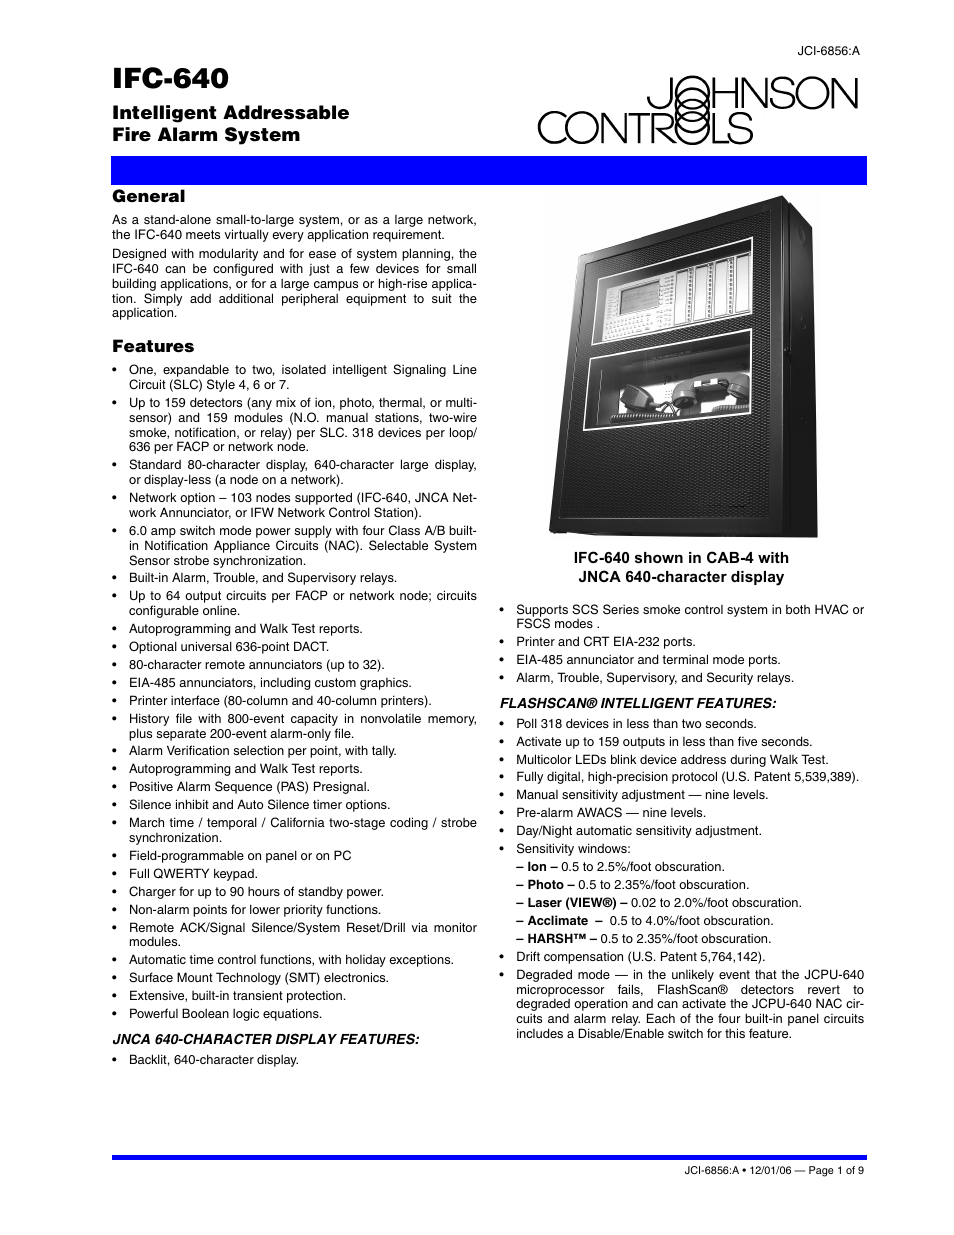 Johnson Controls IFC-640 User Manual | 9 pages